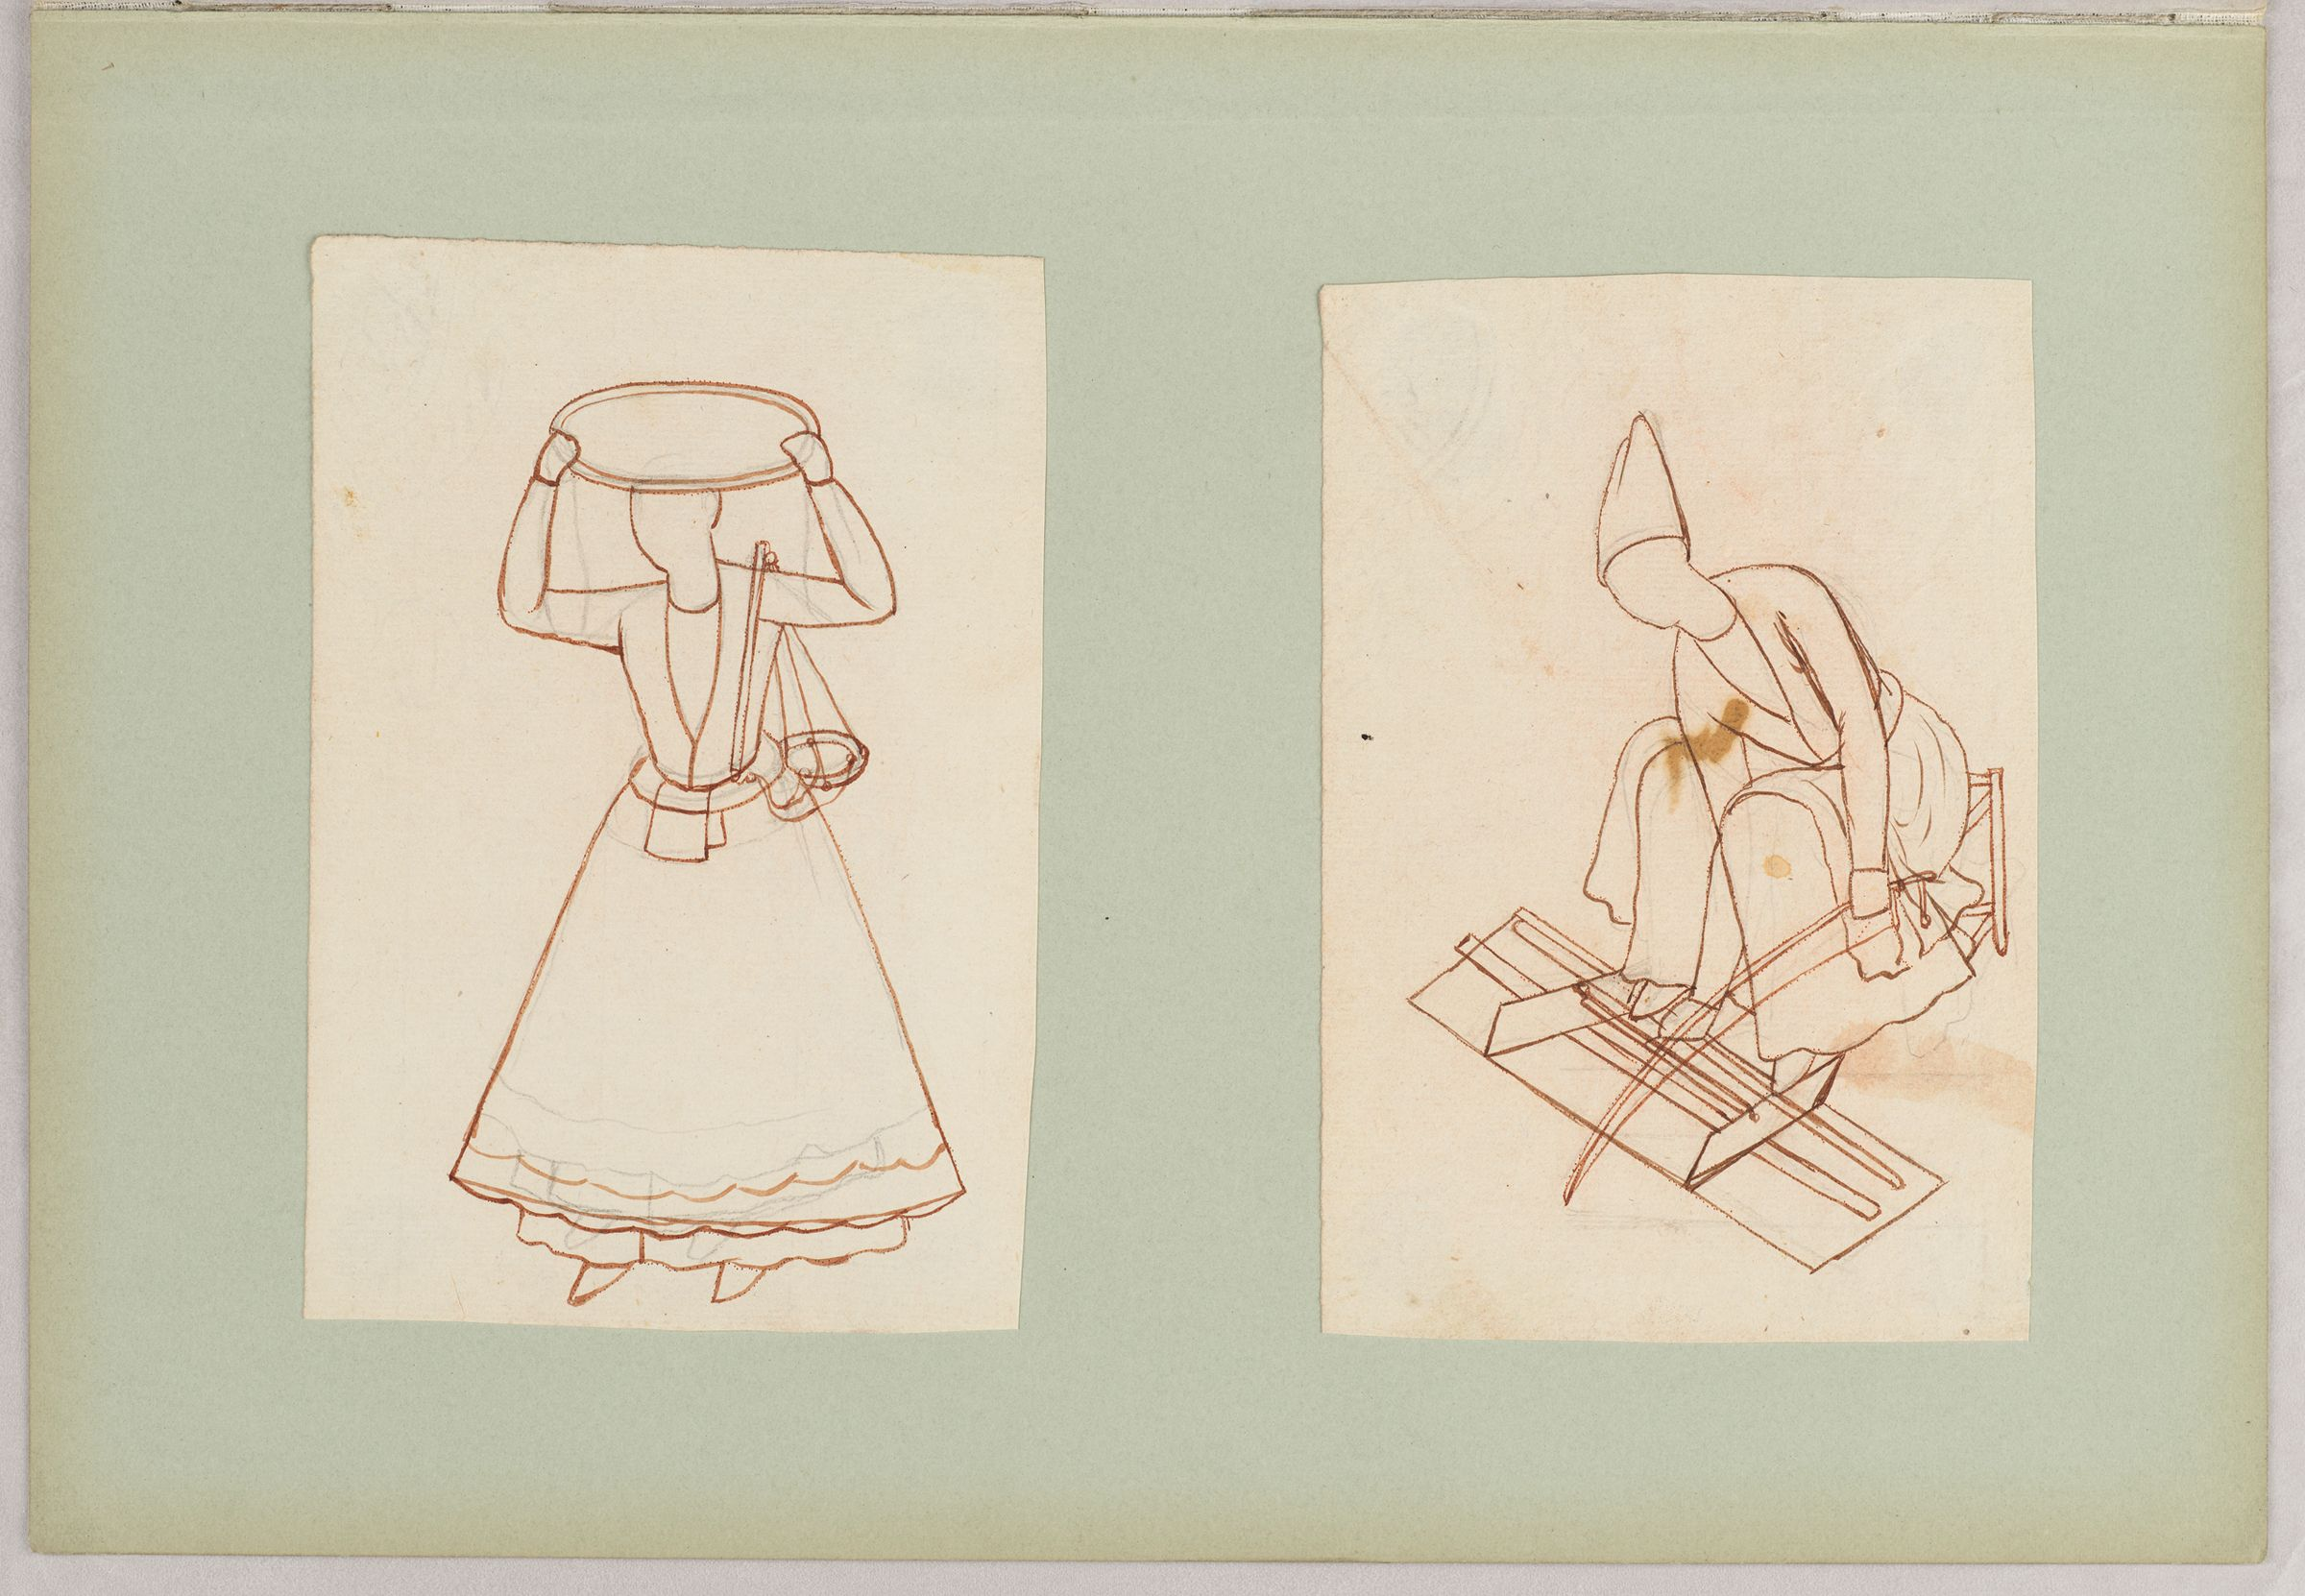 Folio 16 From An Album Of Drawings And Paintings: Two Drawings Of Workmen: Snack Vendor And Lathe-Turner (Recto); Blank Page (Verso)